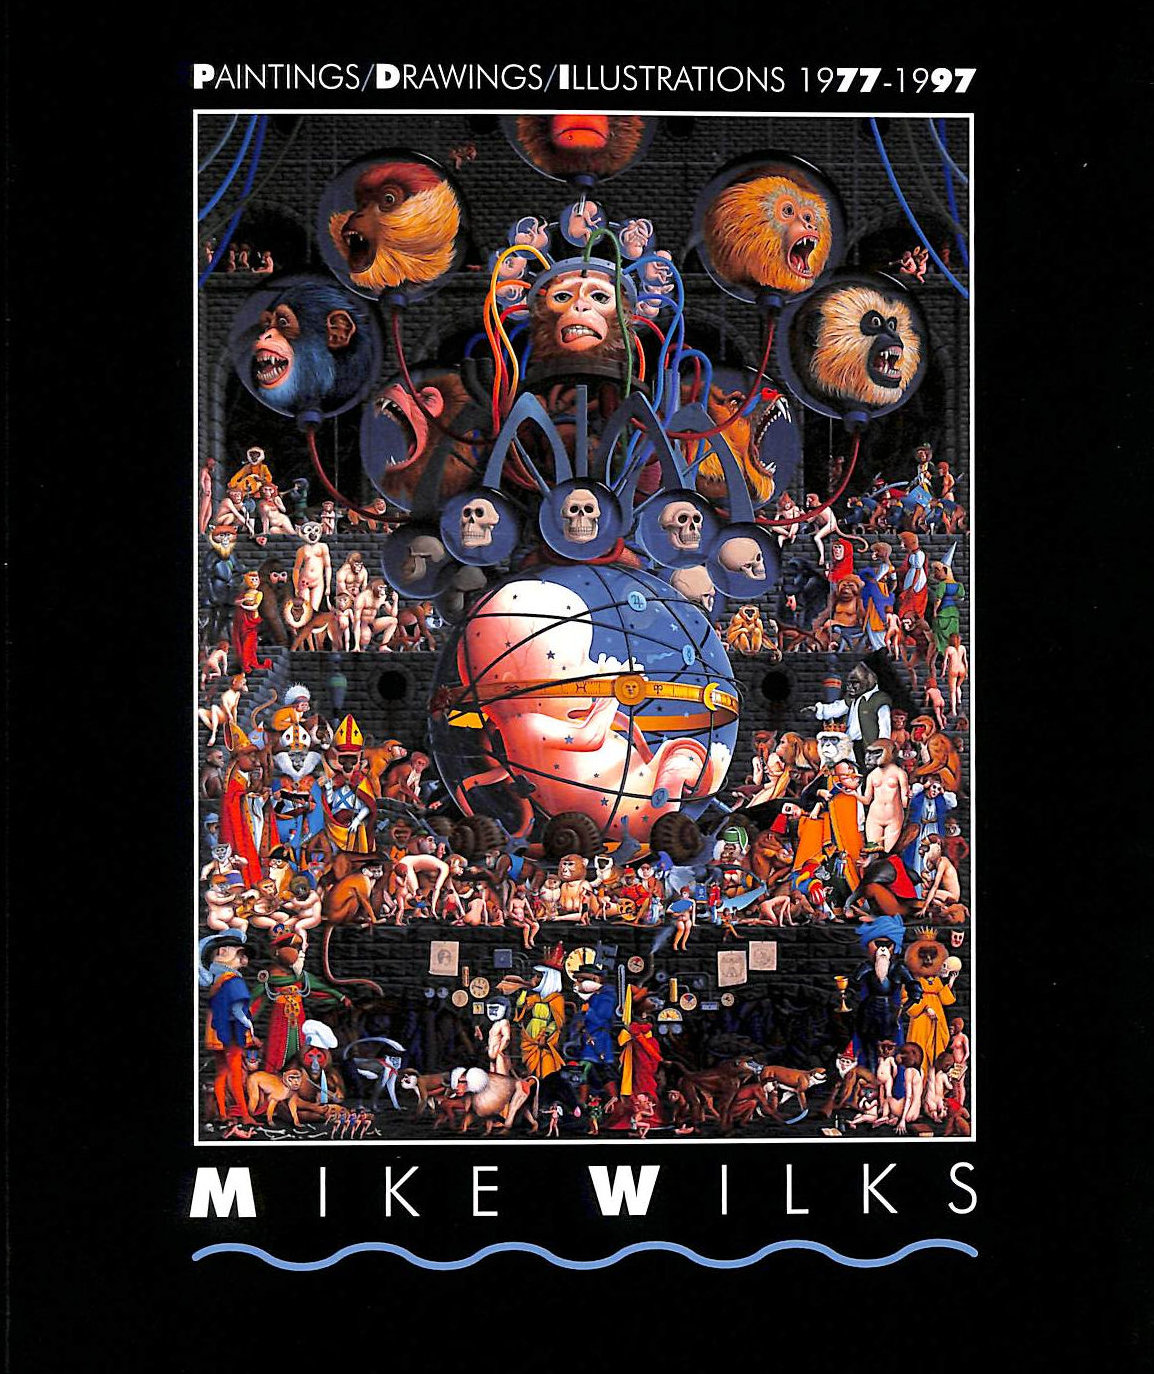 Image for Mike Wilks, Paintings, Drawings, Illustrations 1977-1997